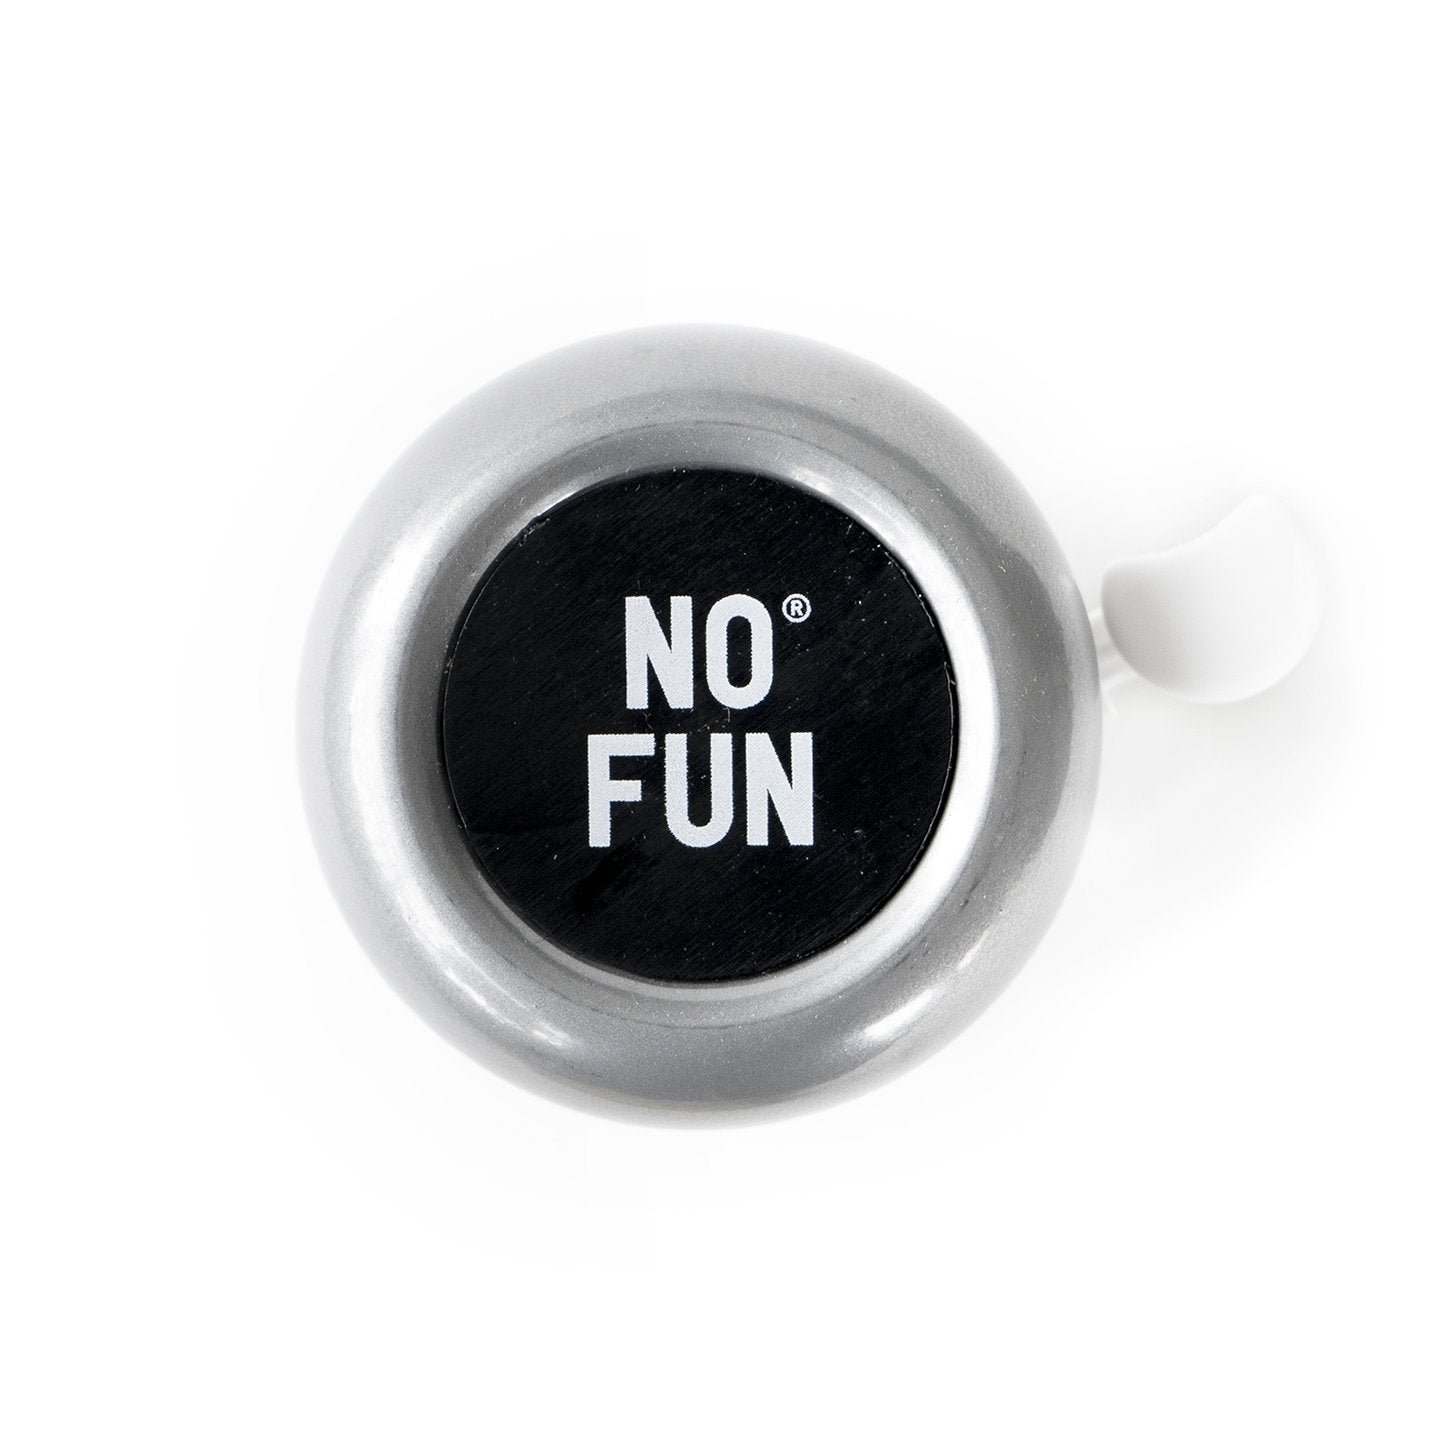 "Official ""NO FUN®"" bicycle bell.  Bell is fabricated with metal and plastic, and features a black disk in the center with white ""NO FUN®"" branding."